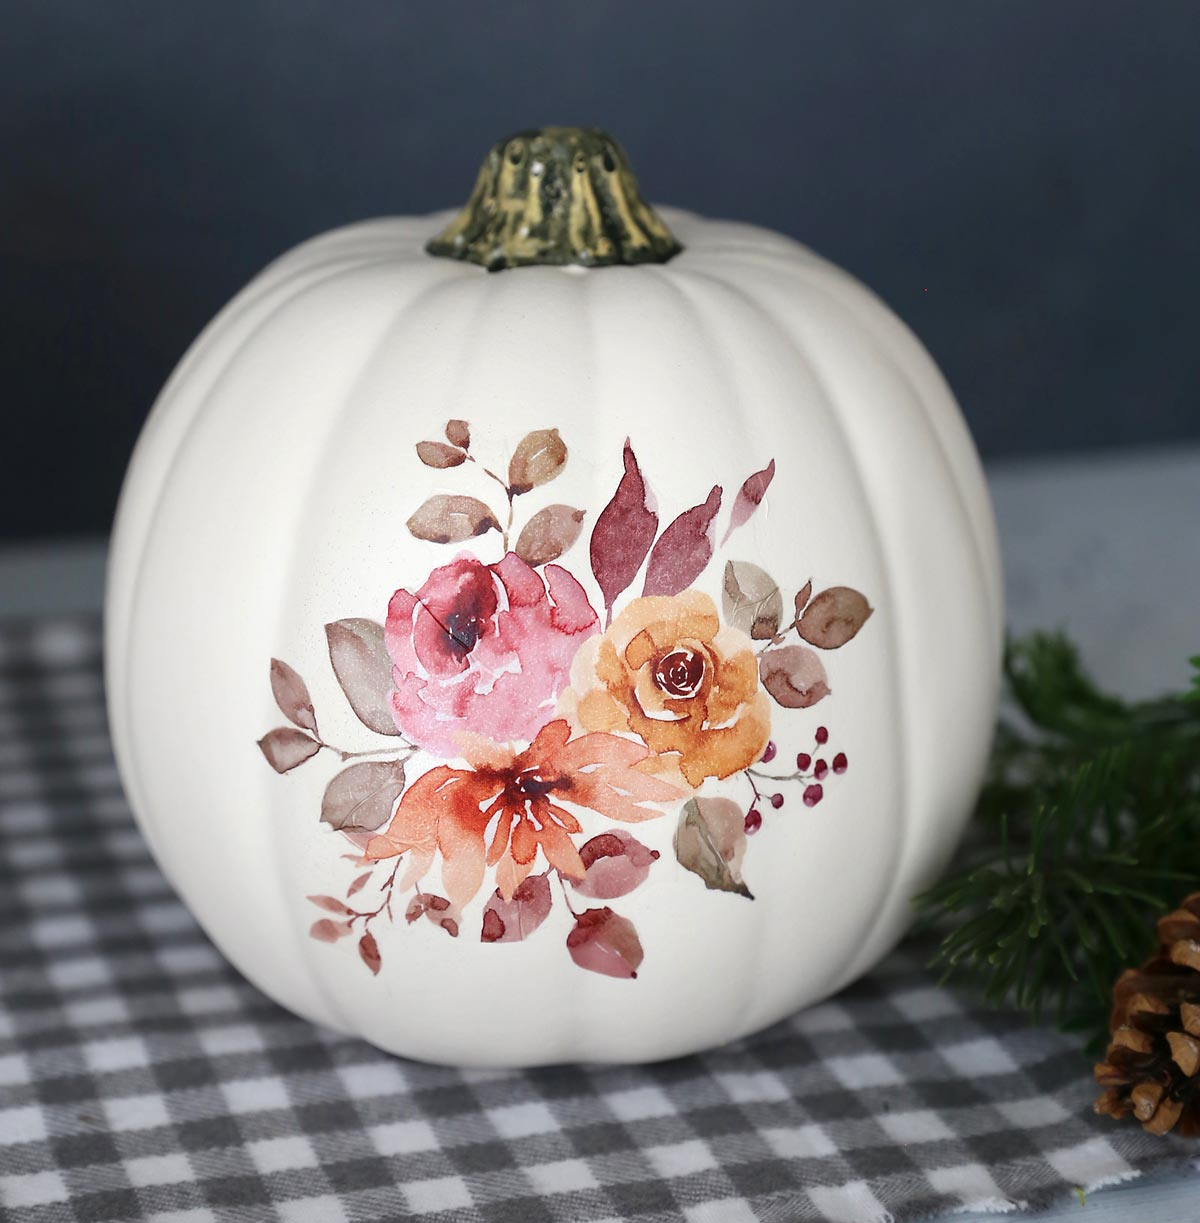 White craft pumpkin with fall floral design transferred onto it